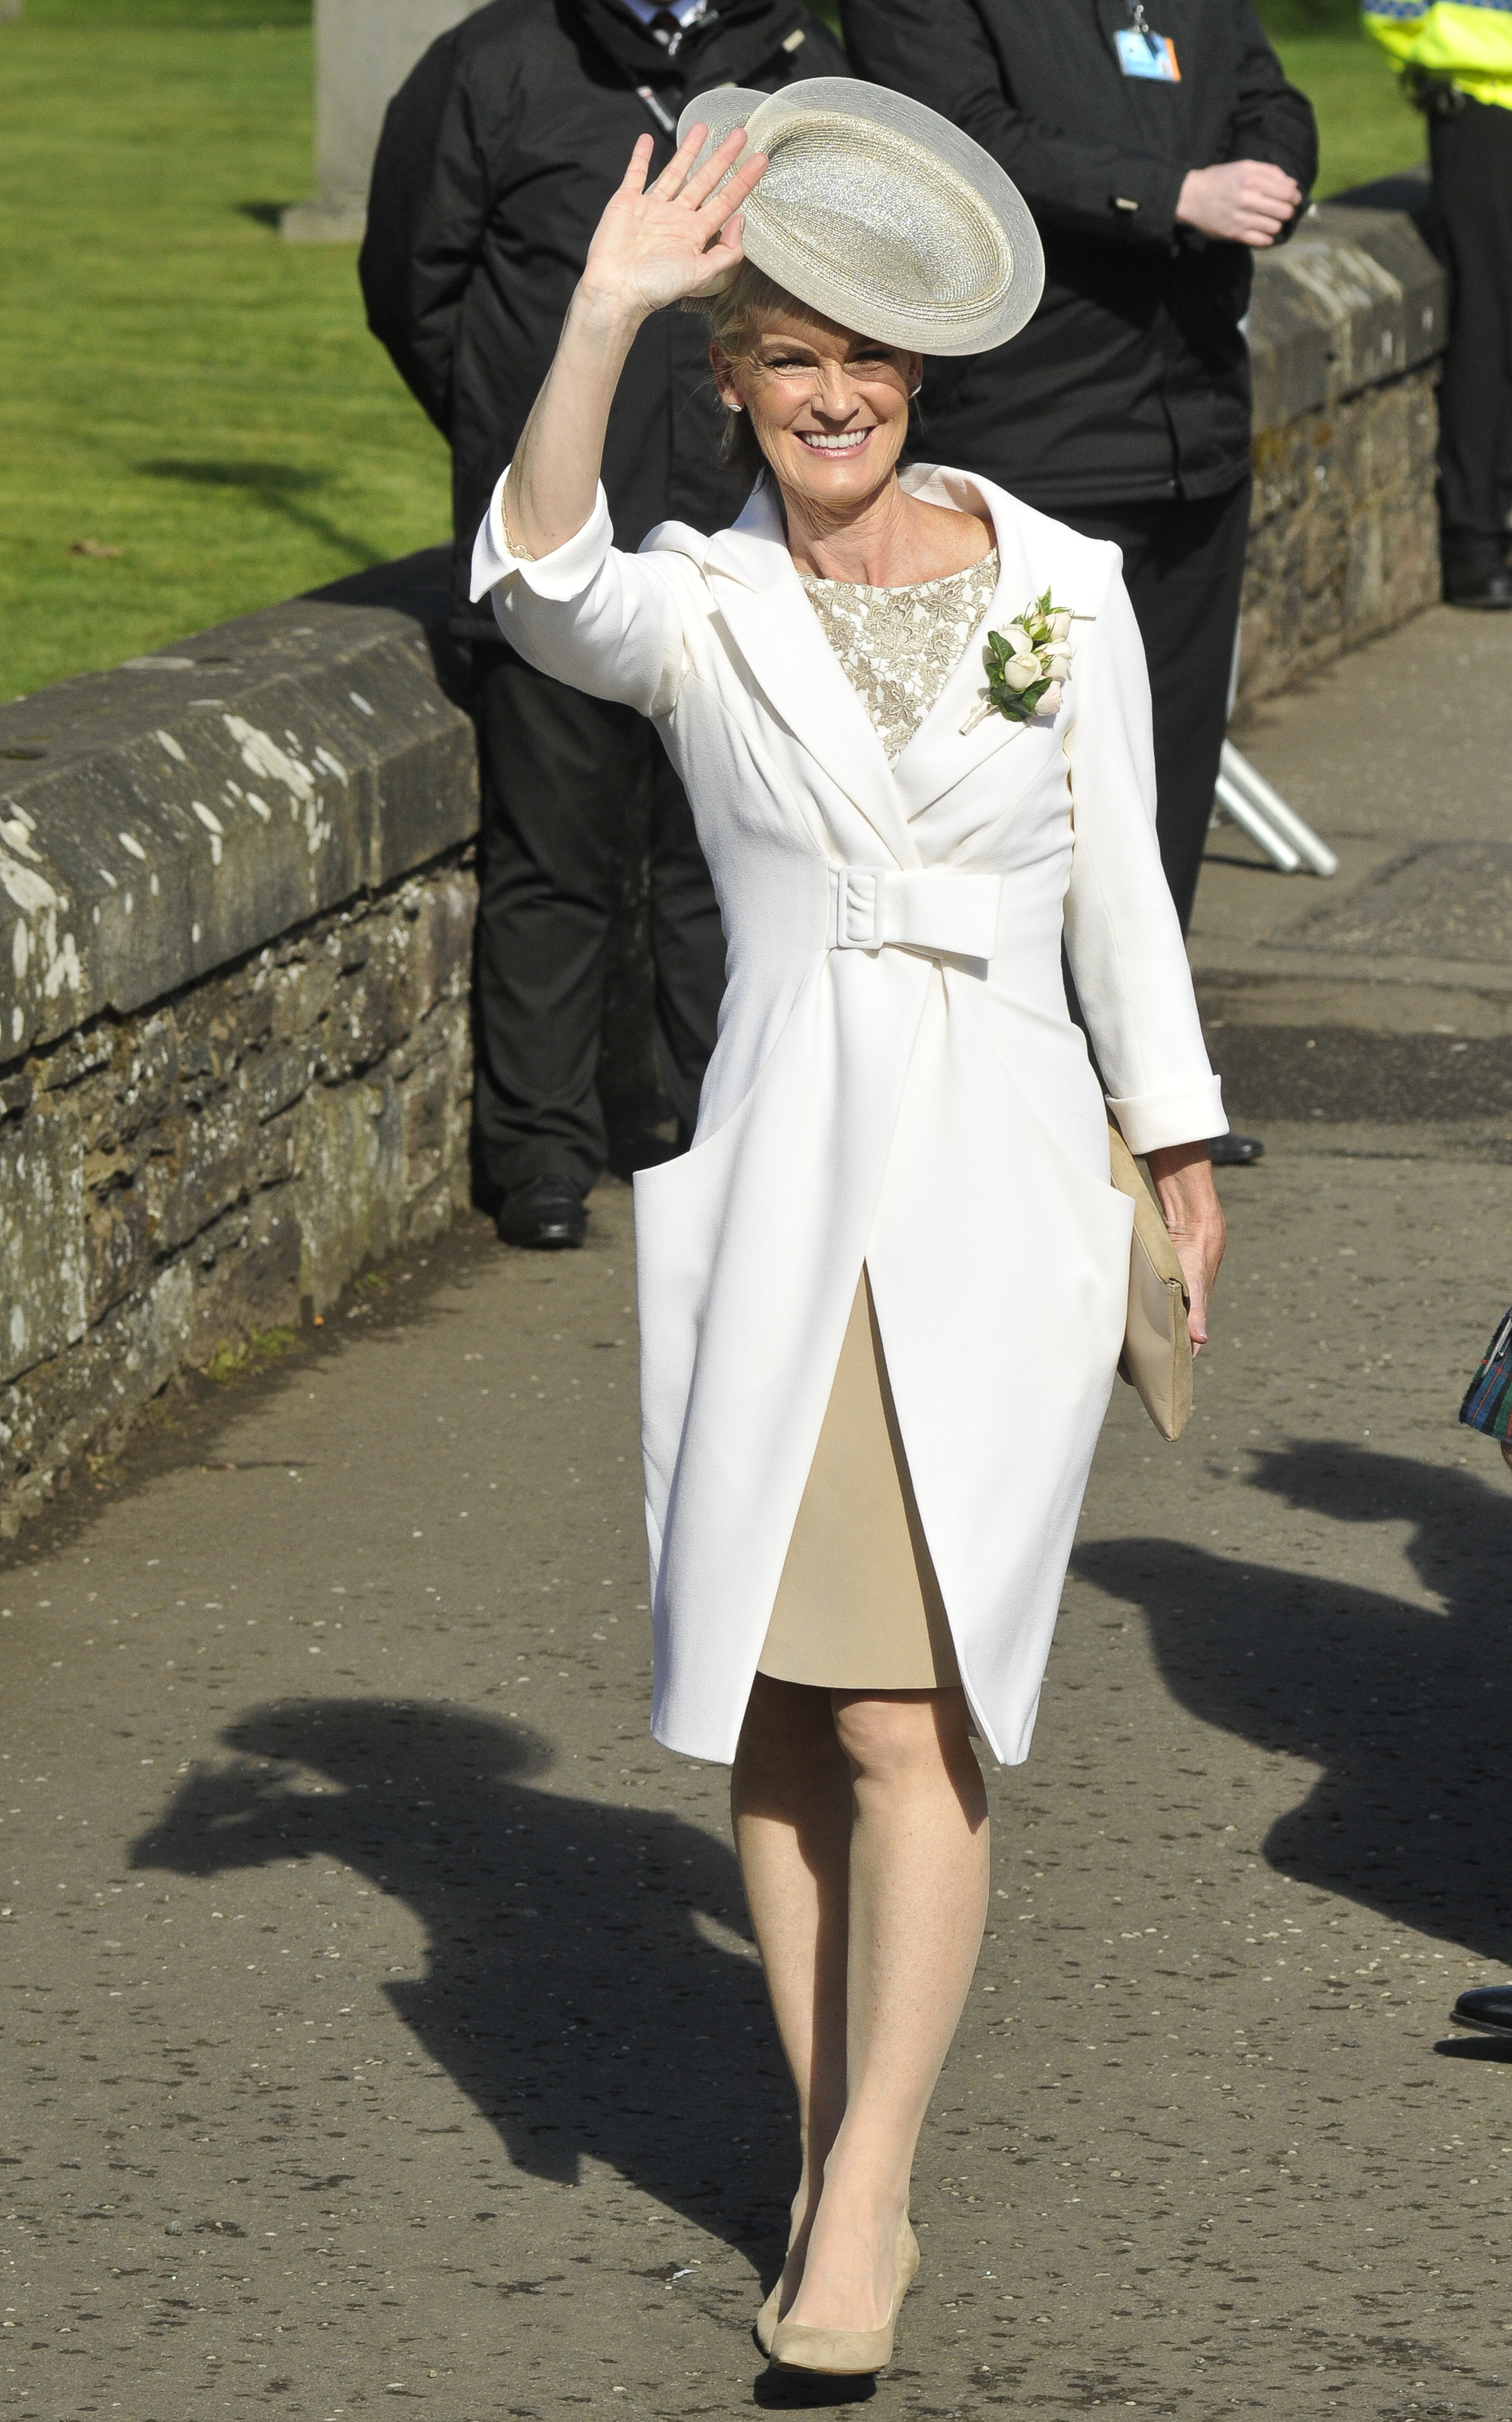 Judy Murray as the Mother of the Bride